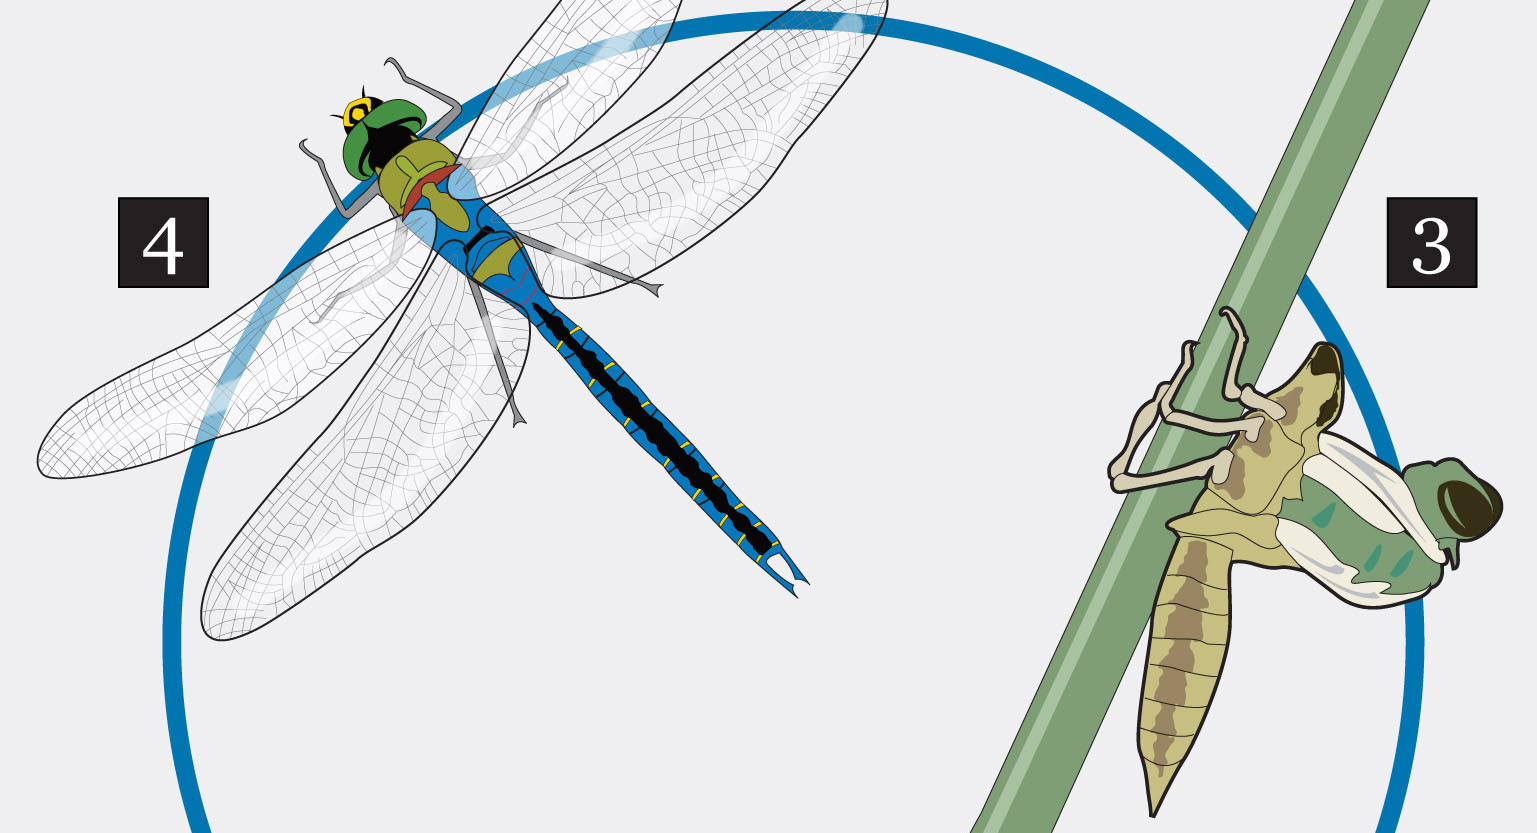 dragonfly facts graphic - Chicago Tribune